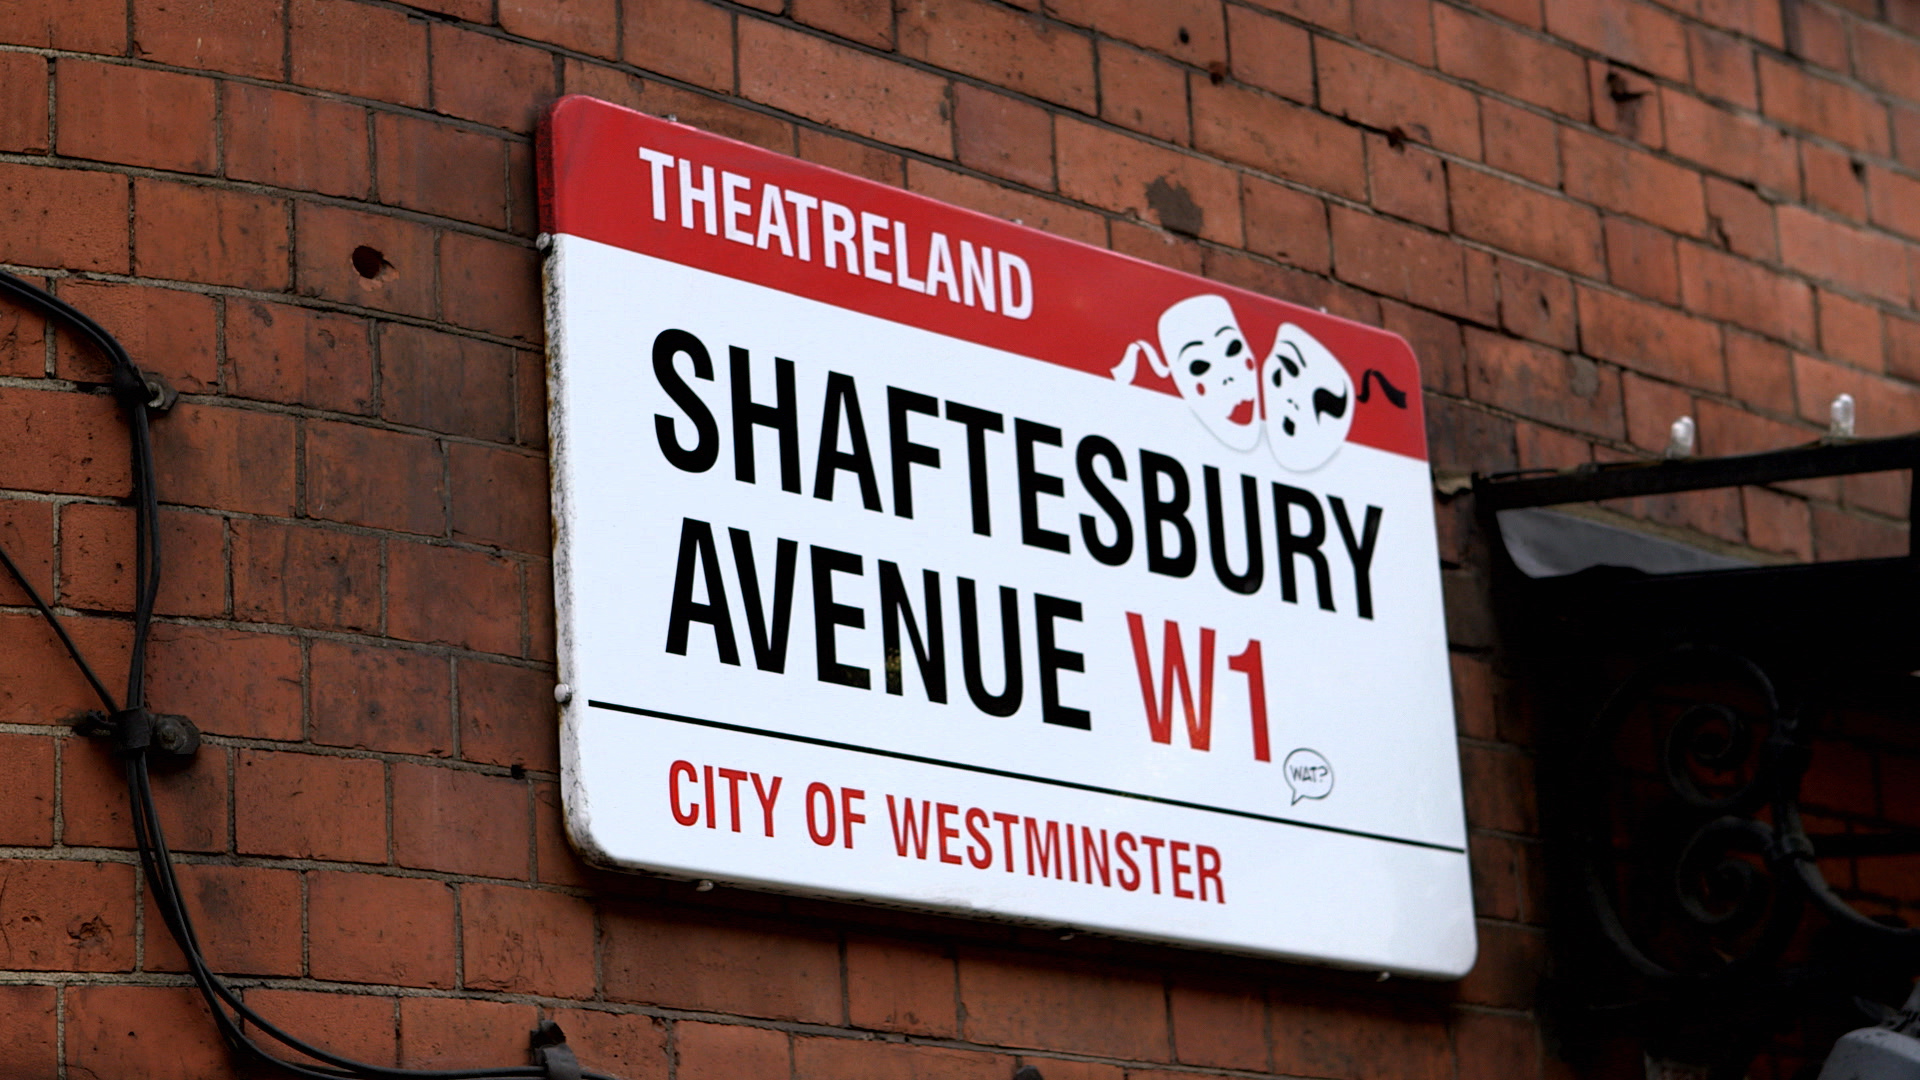 CC Orlando screenshot Shaftesbury Avenue sign